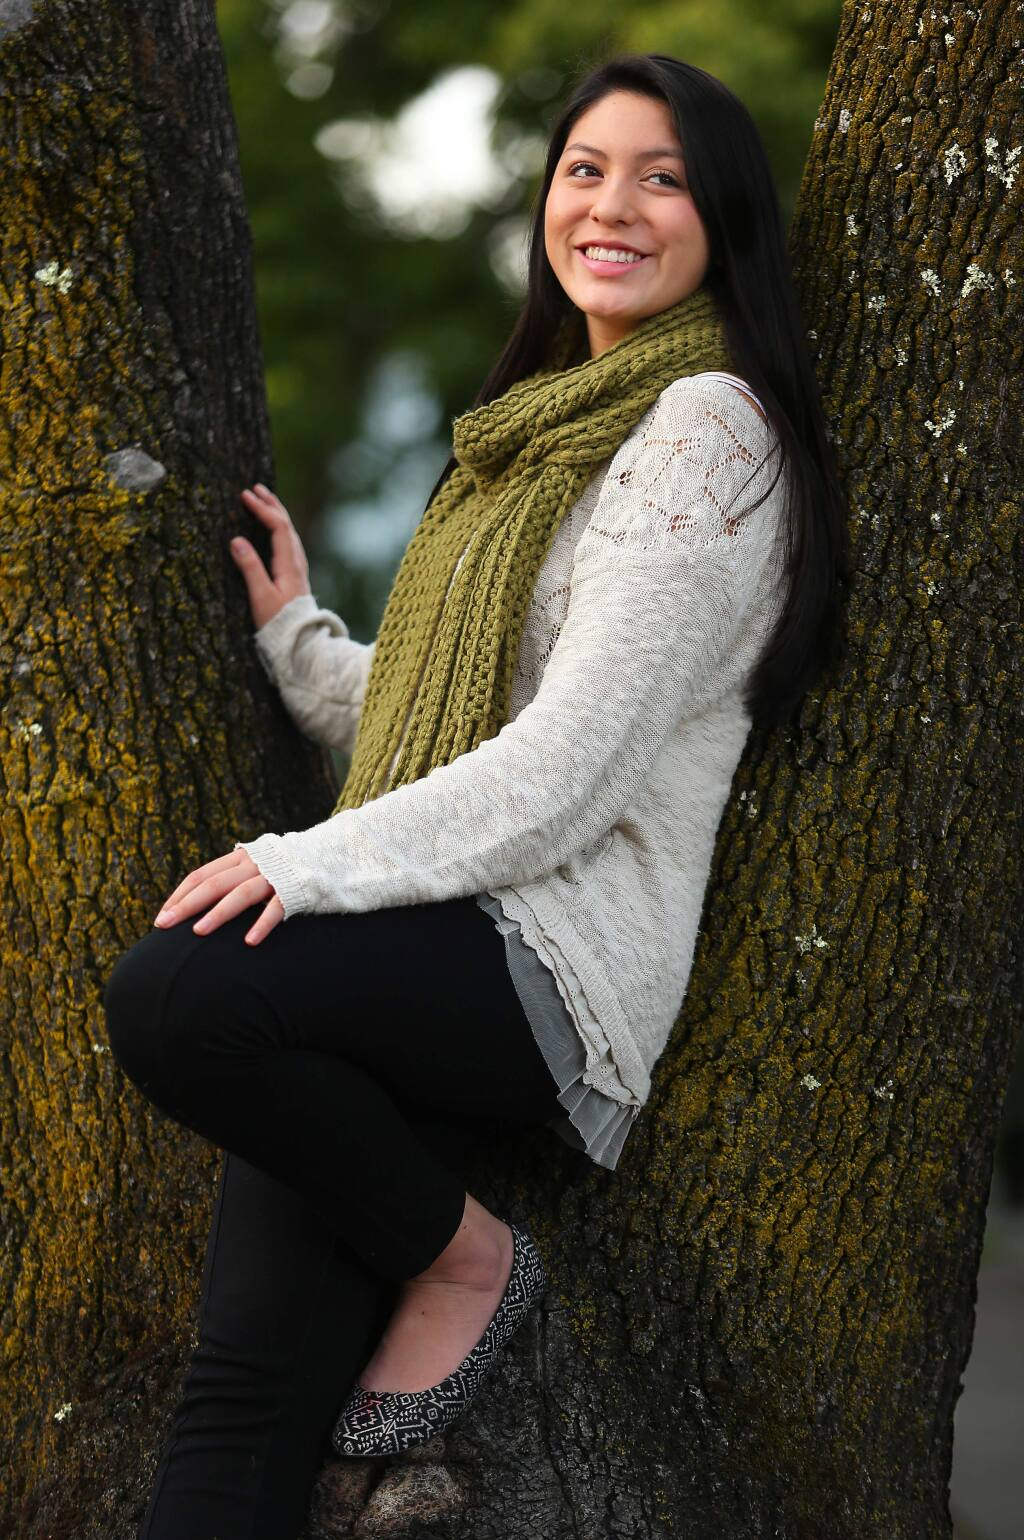 Sarah Almeyda, a senior at Windsor, is interested in youth environmental activism. As a member of the Global Student Embassy Club, she's helping to build a garden at Cali Calmecac.(Christopher Chung/ The Press Democrat)